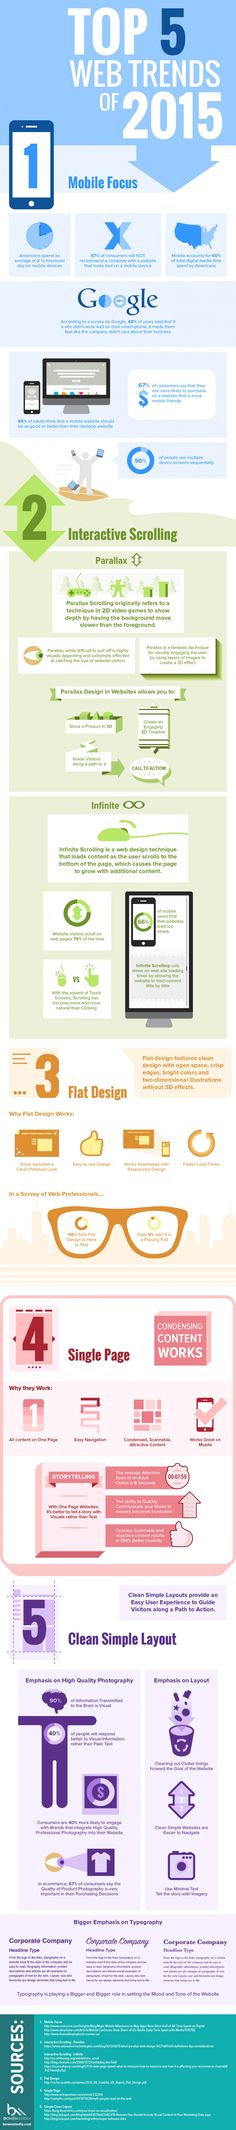 Top 5 web design trends for 2015 #infographic #webdesign #web #website [http://www.pinterest.com/loganless/]